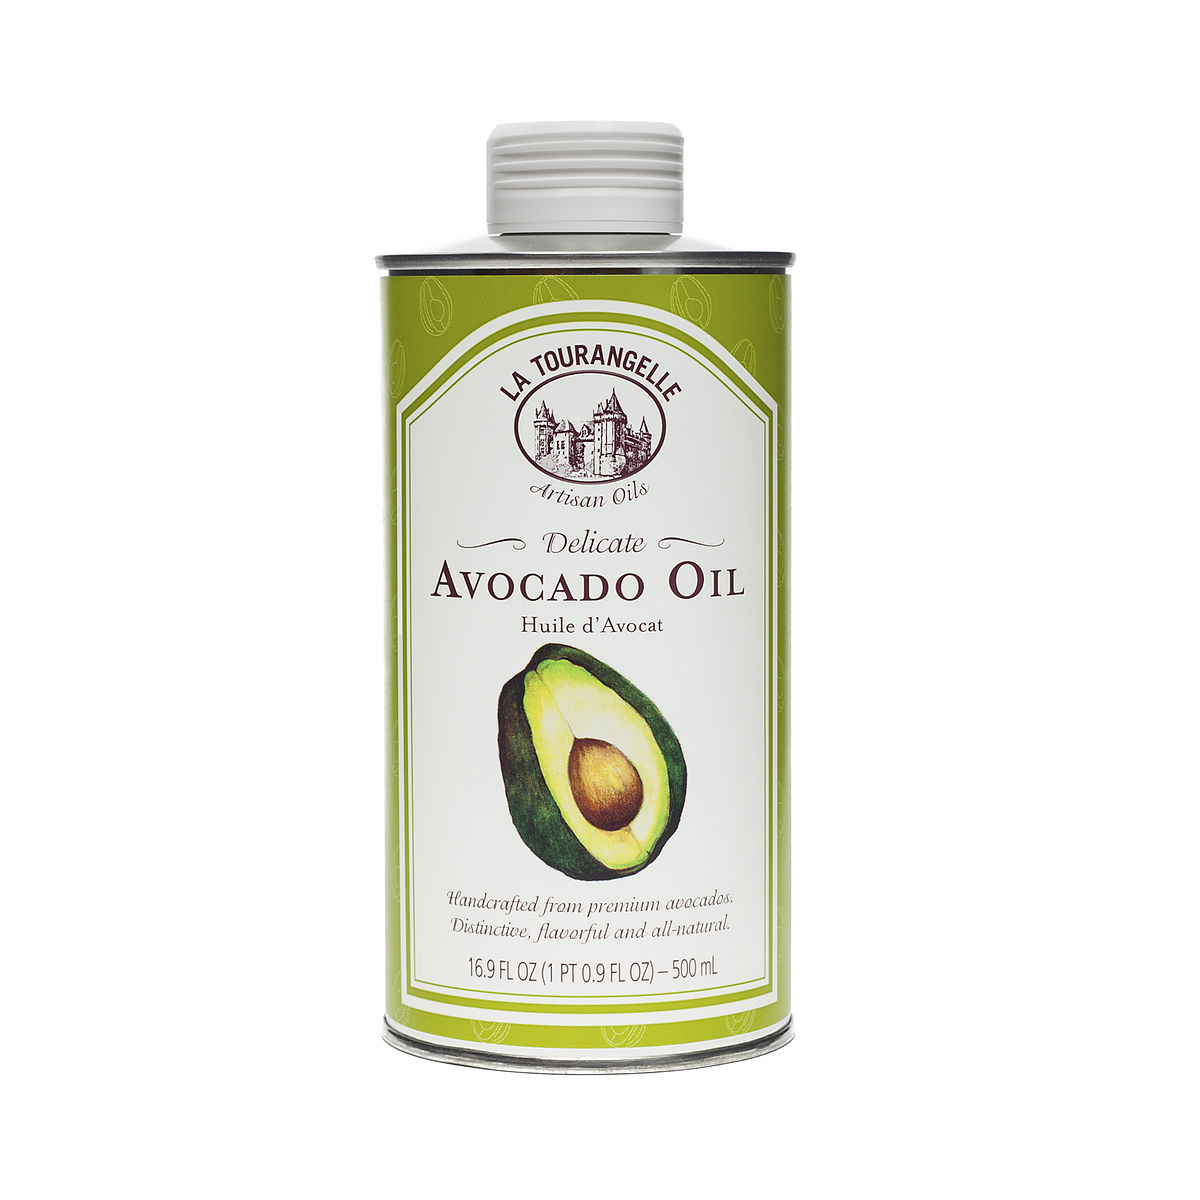 Avocado Oil 500 Ml Bottle By La Tourangelle Thrive Market